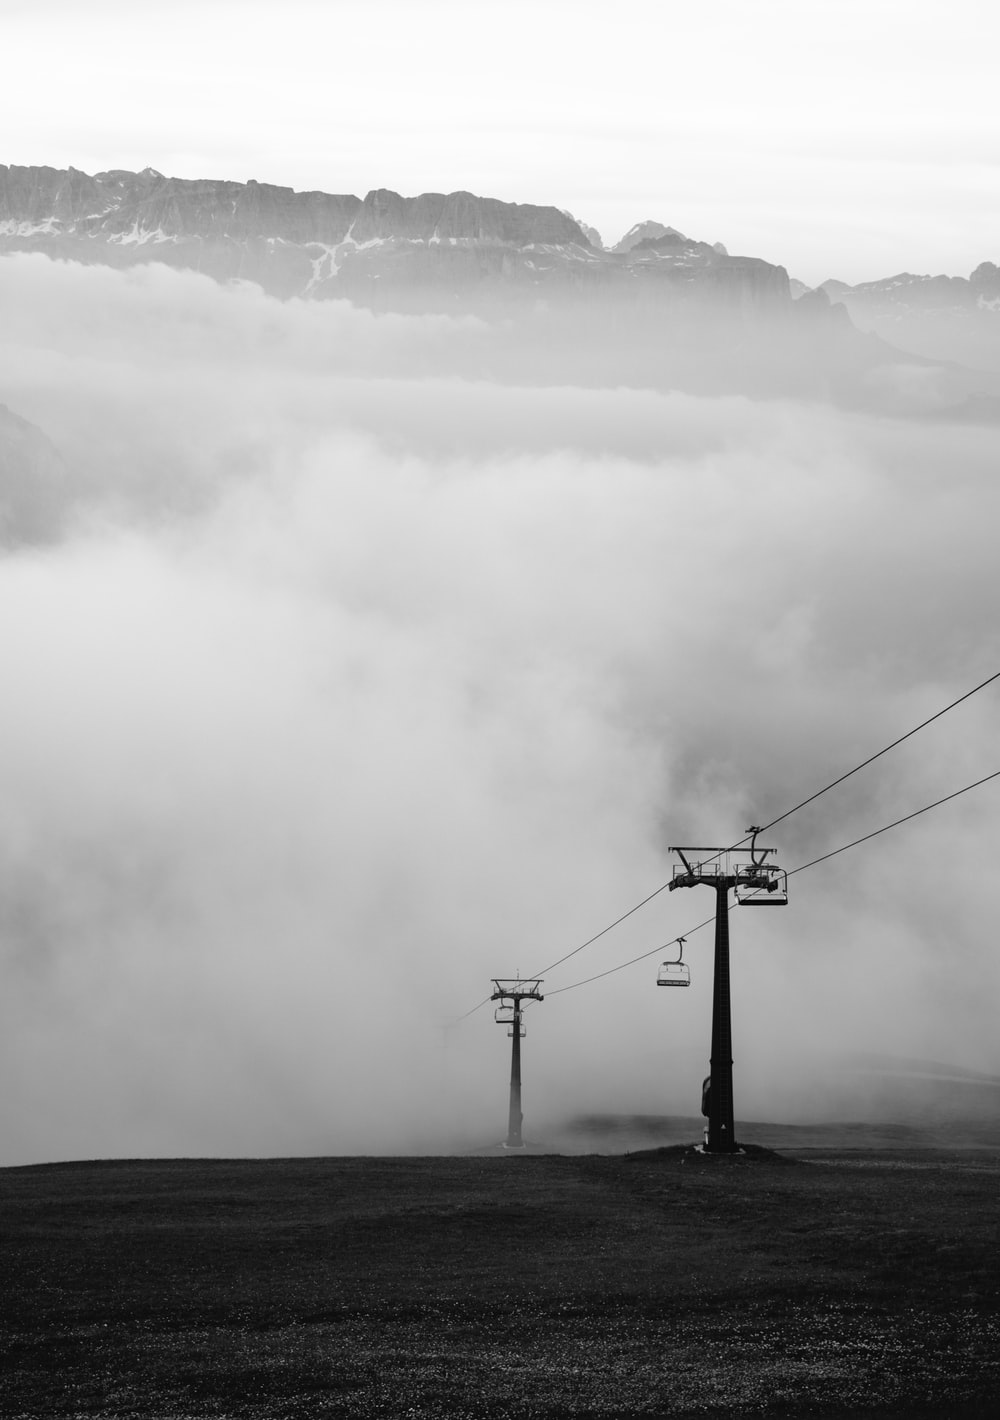 clouds forming near cable cart